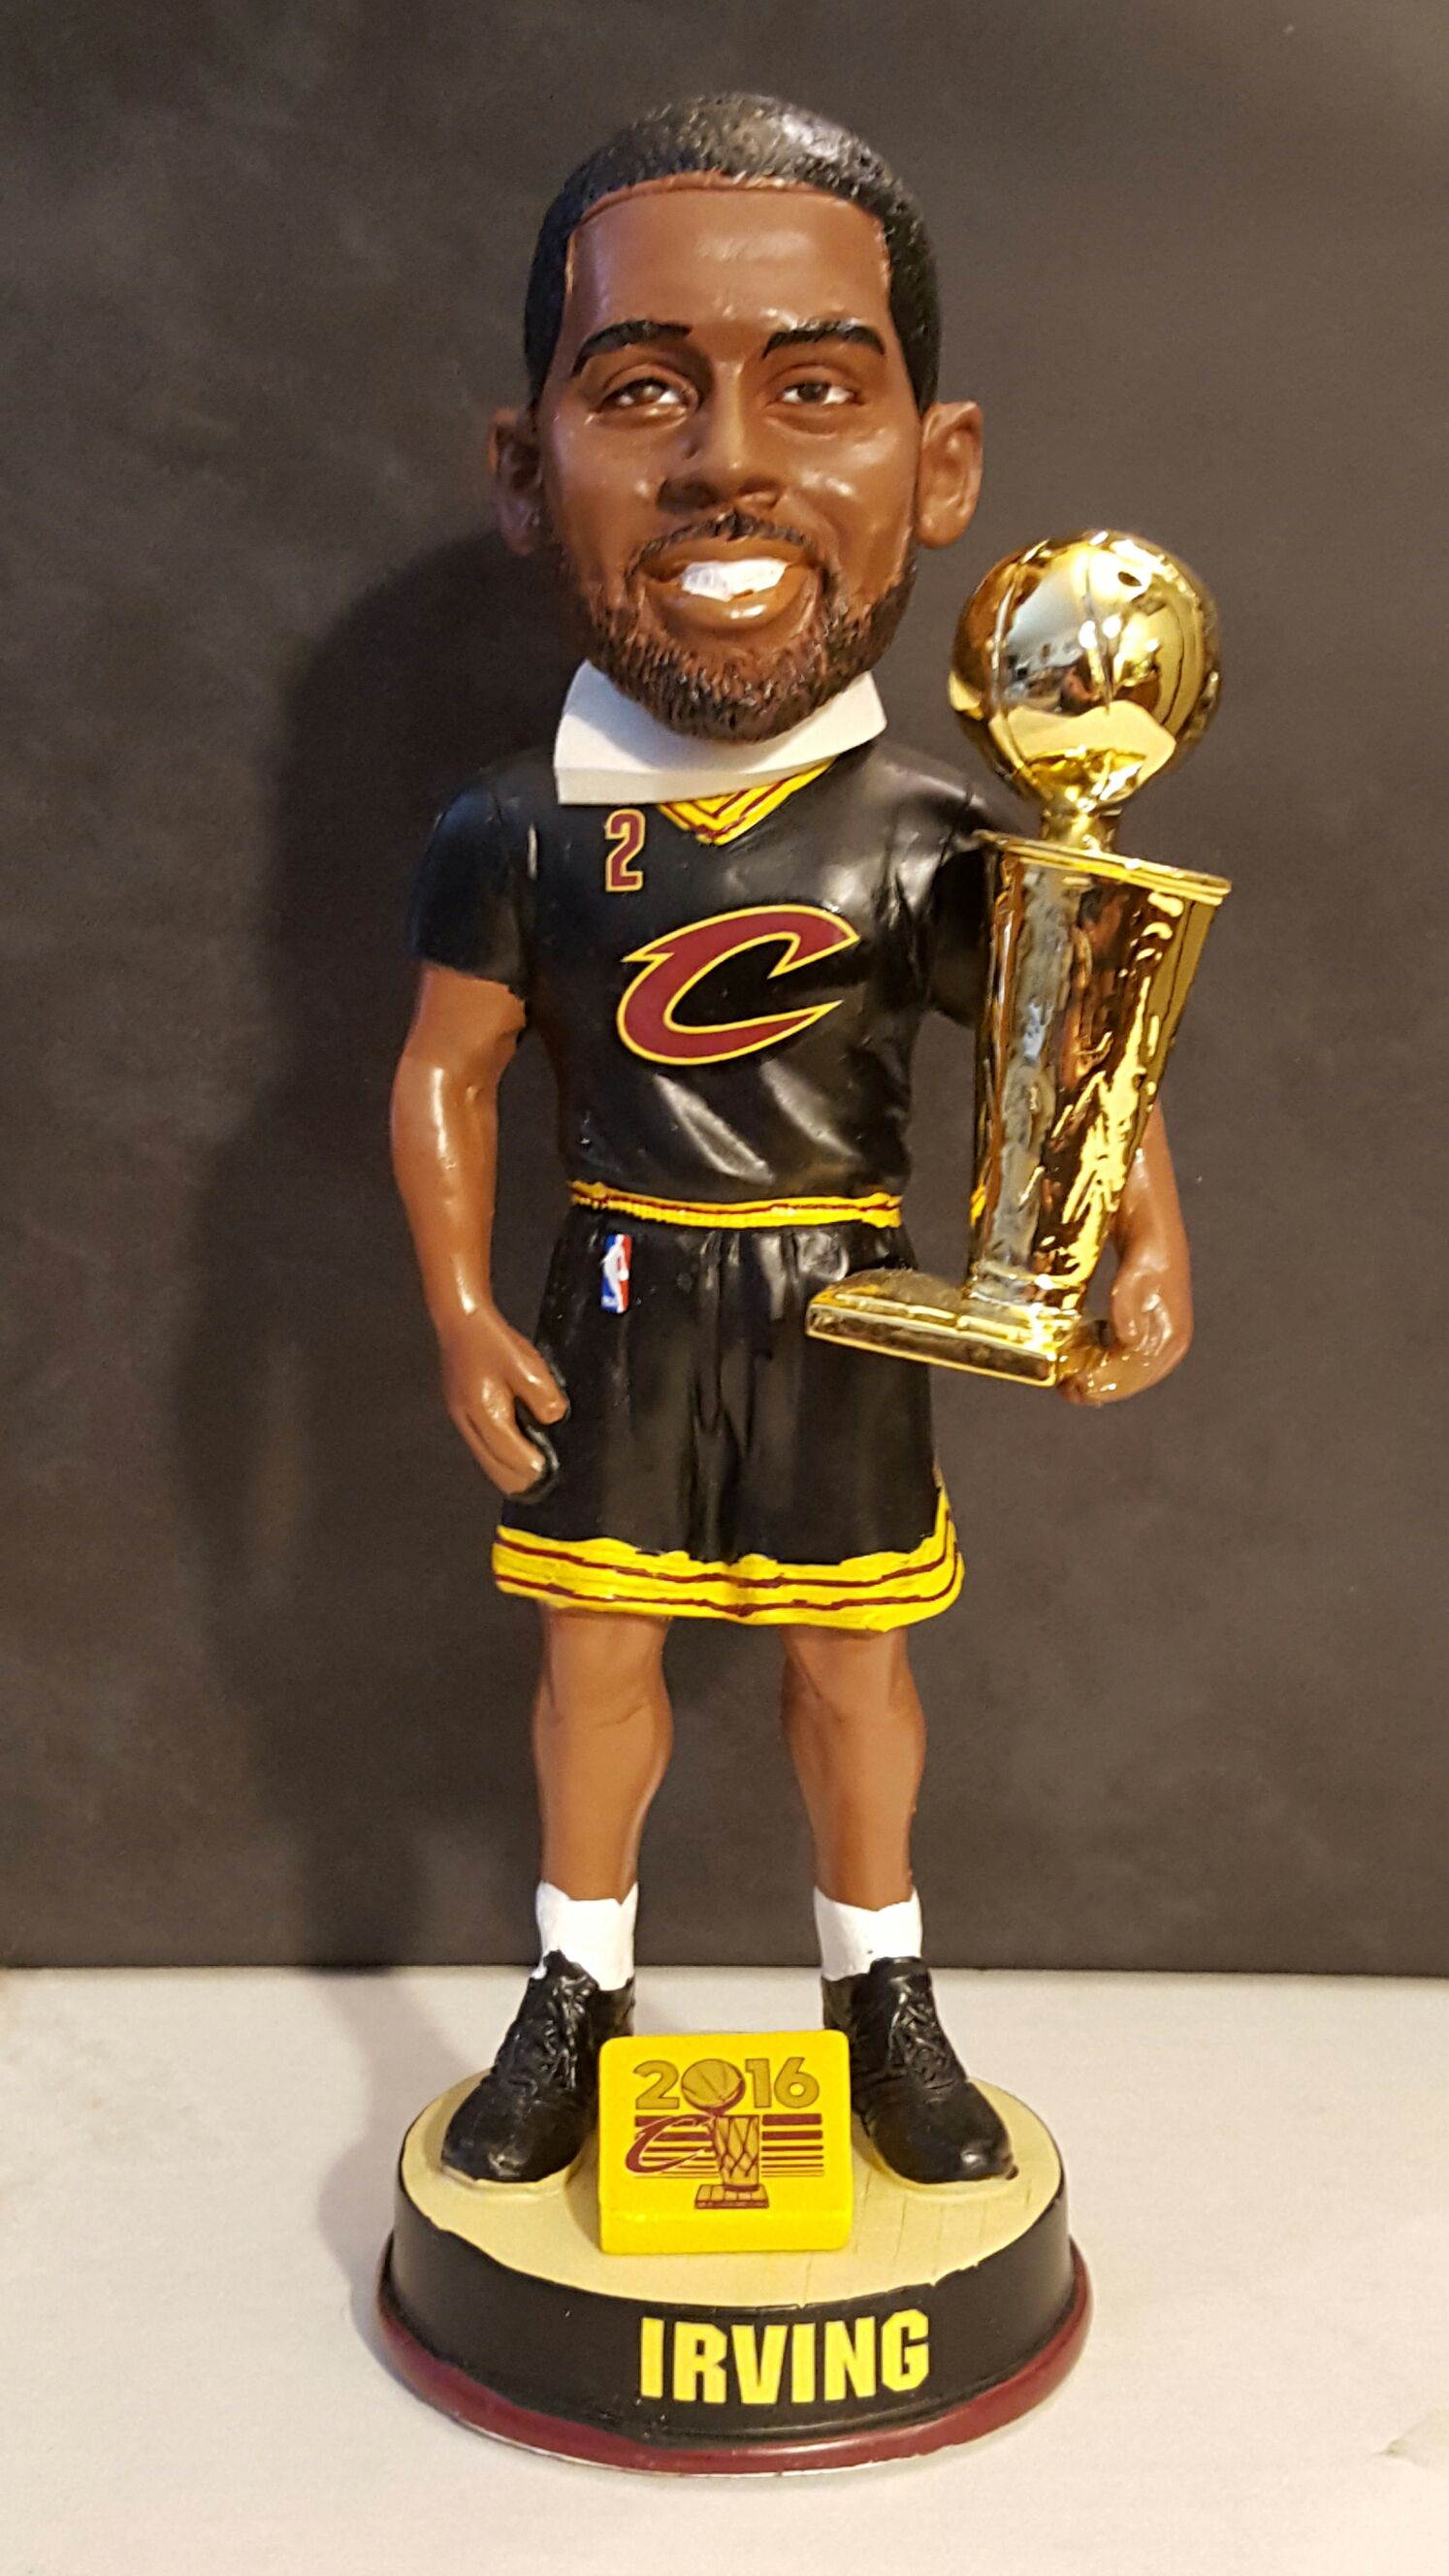 Kyrie Irving Bobblehead - Basketball (2016) front image (front cover)